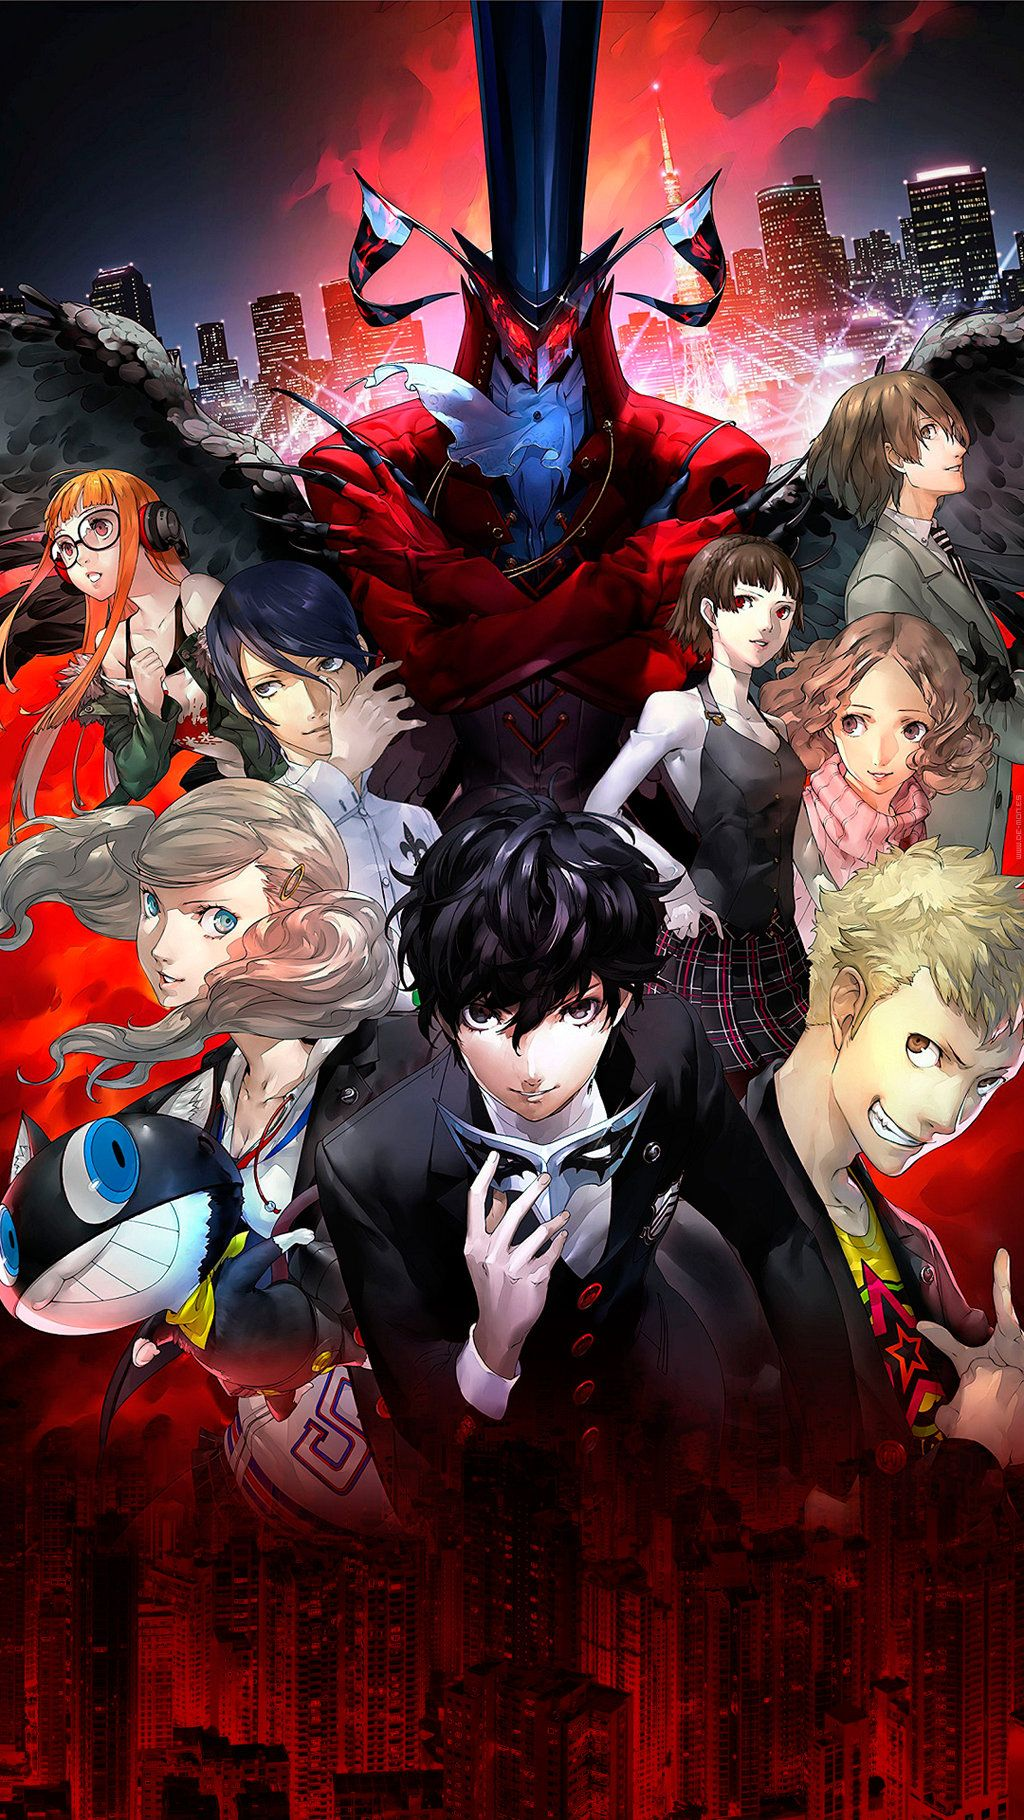 Persona 5 4K Wallpapers - Top Free Persona 5 4K ...